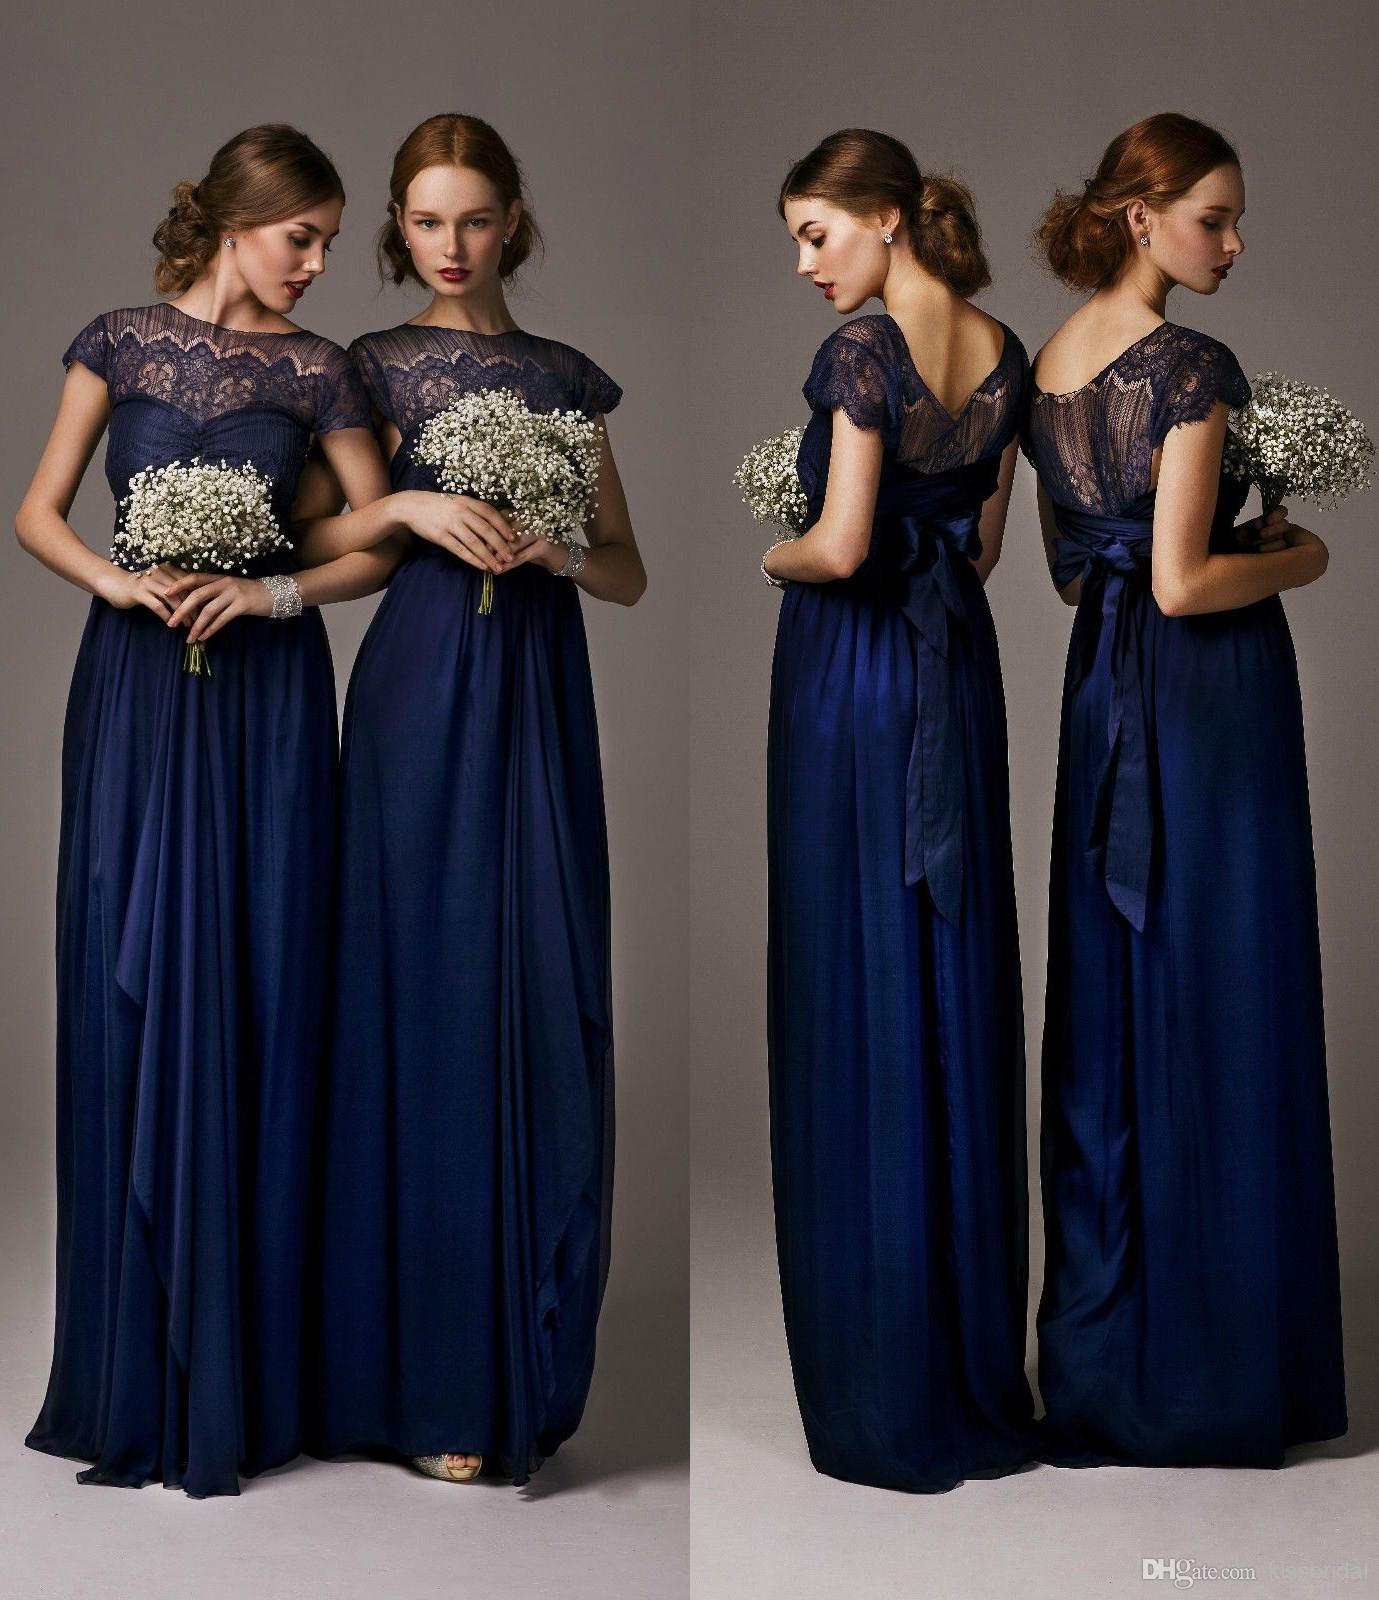 Dark navy blue bridesmaid dresses aol image search results ombrellifo Image collections